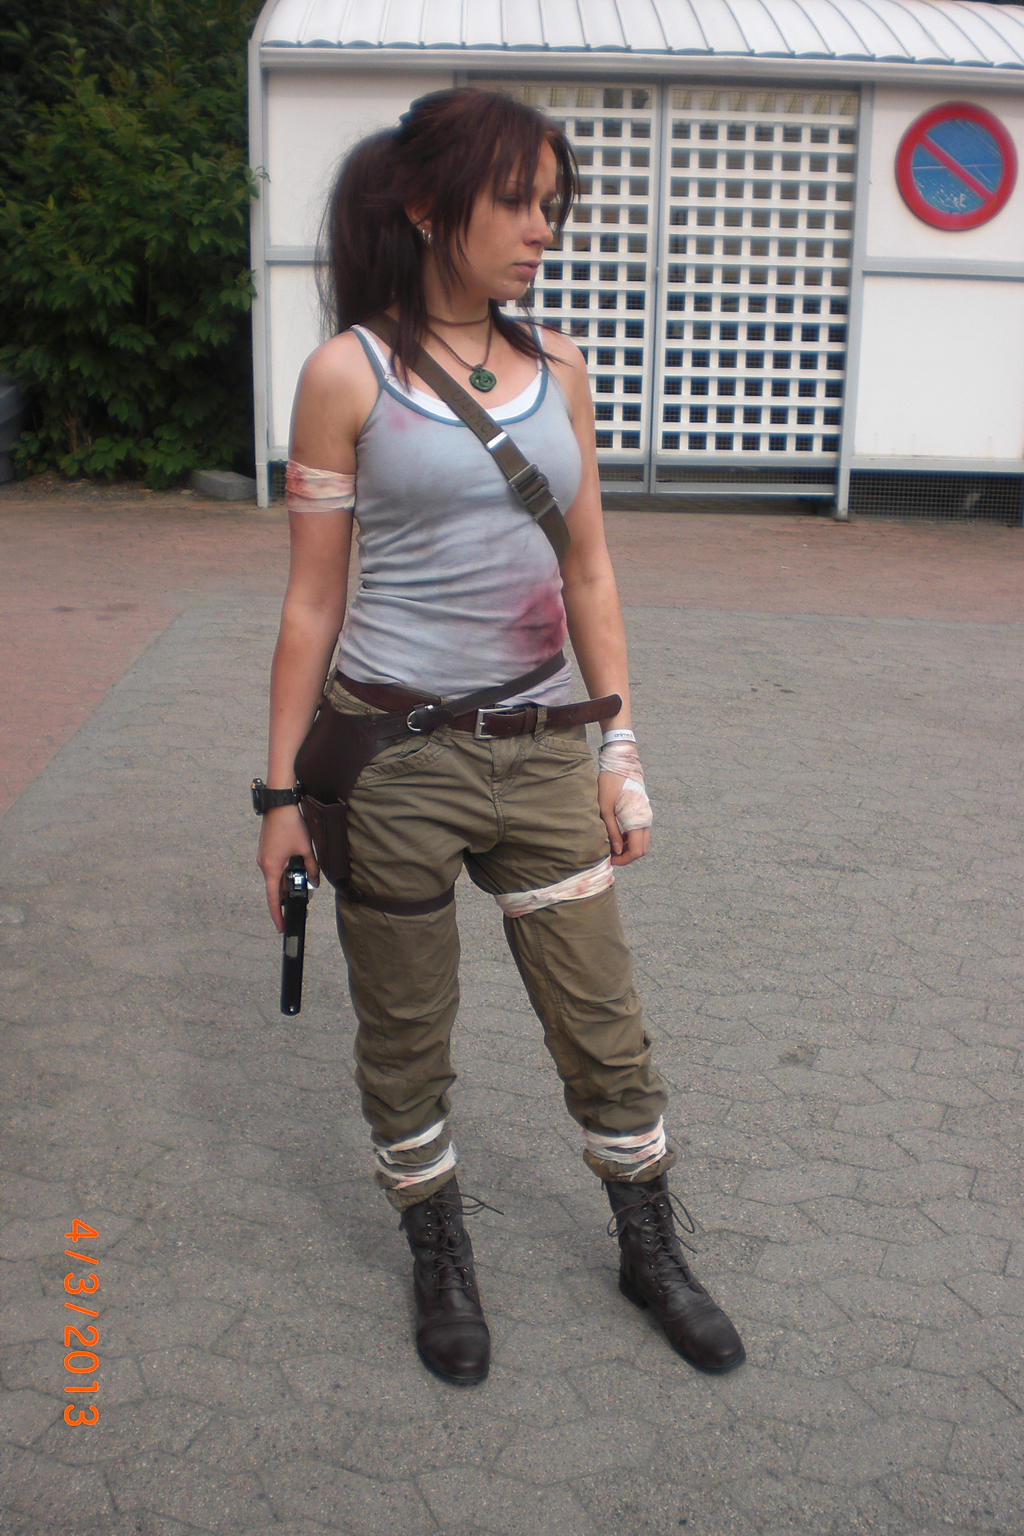 Animecon 2013 ~ Tomb Raider ~ Lara Croft cosplay by xXGiggleDeathProXx